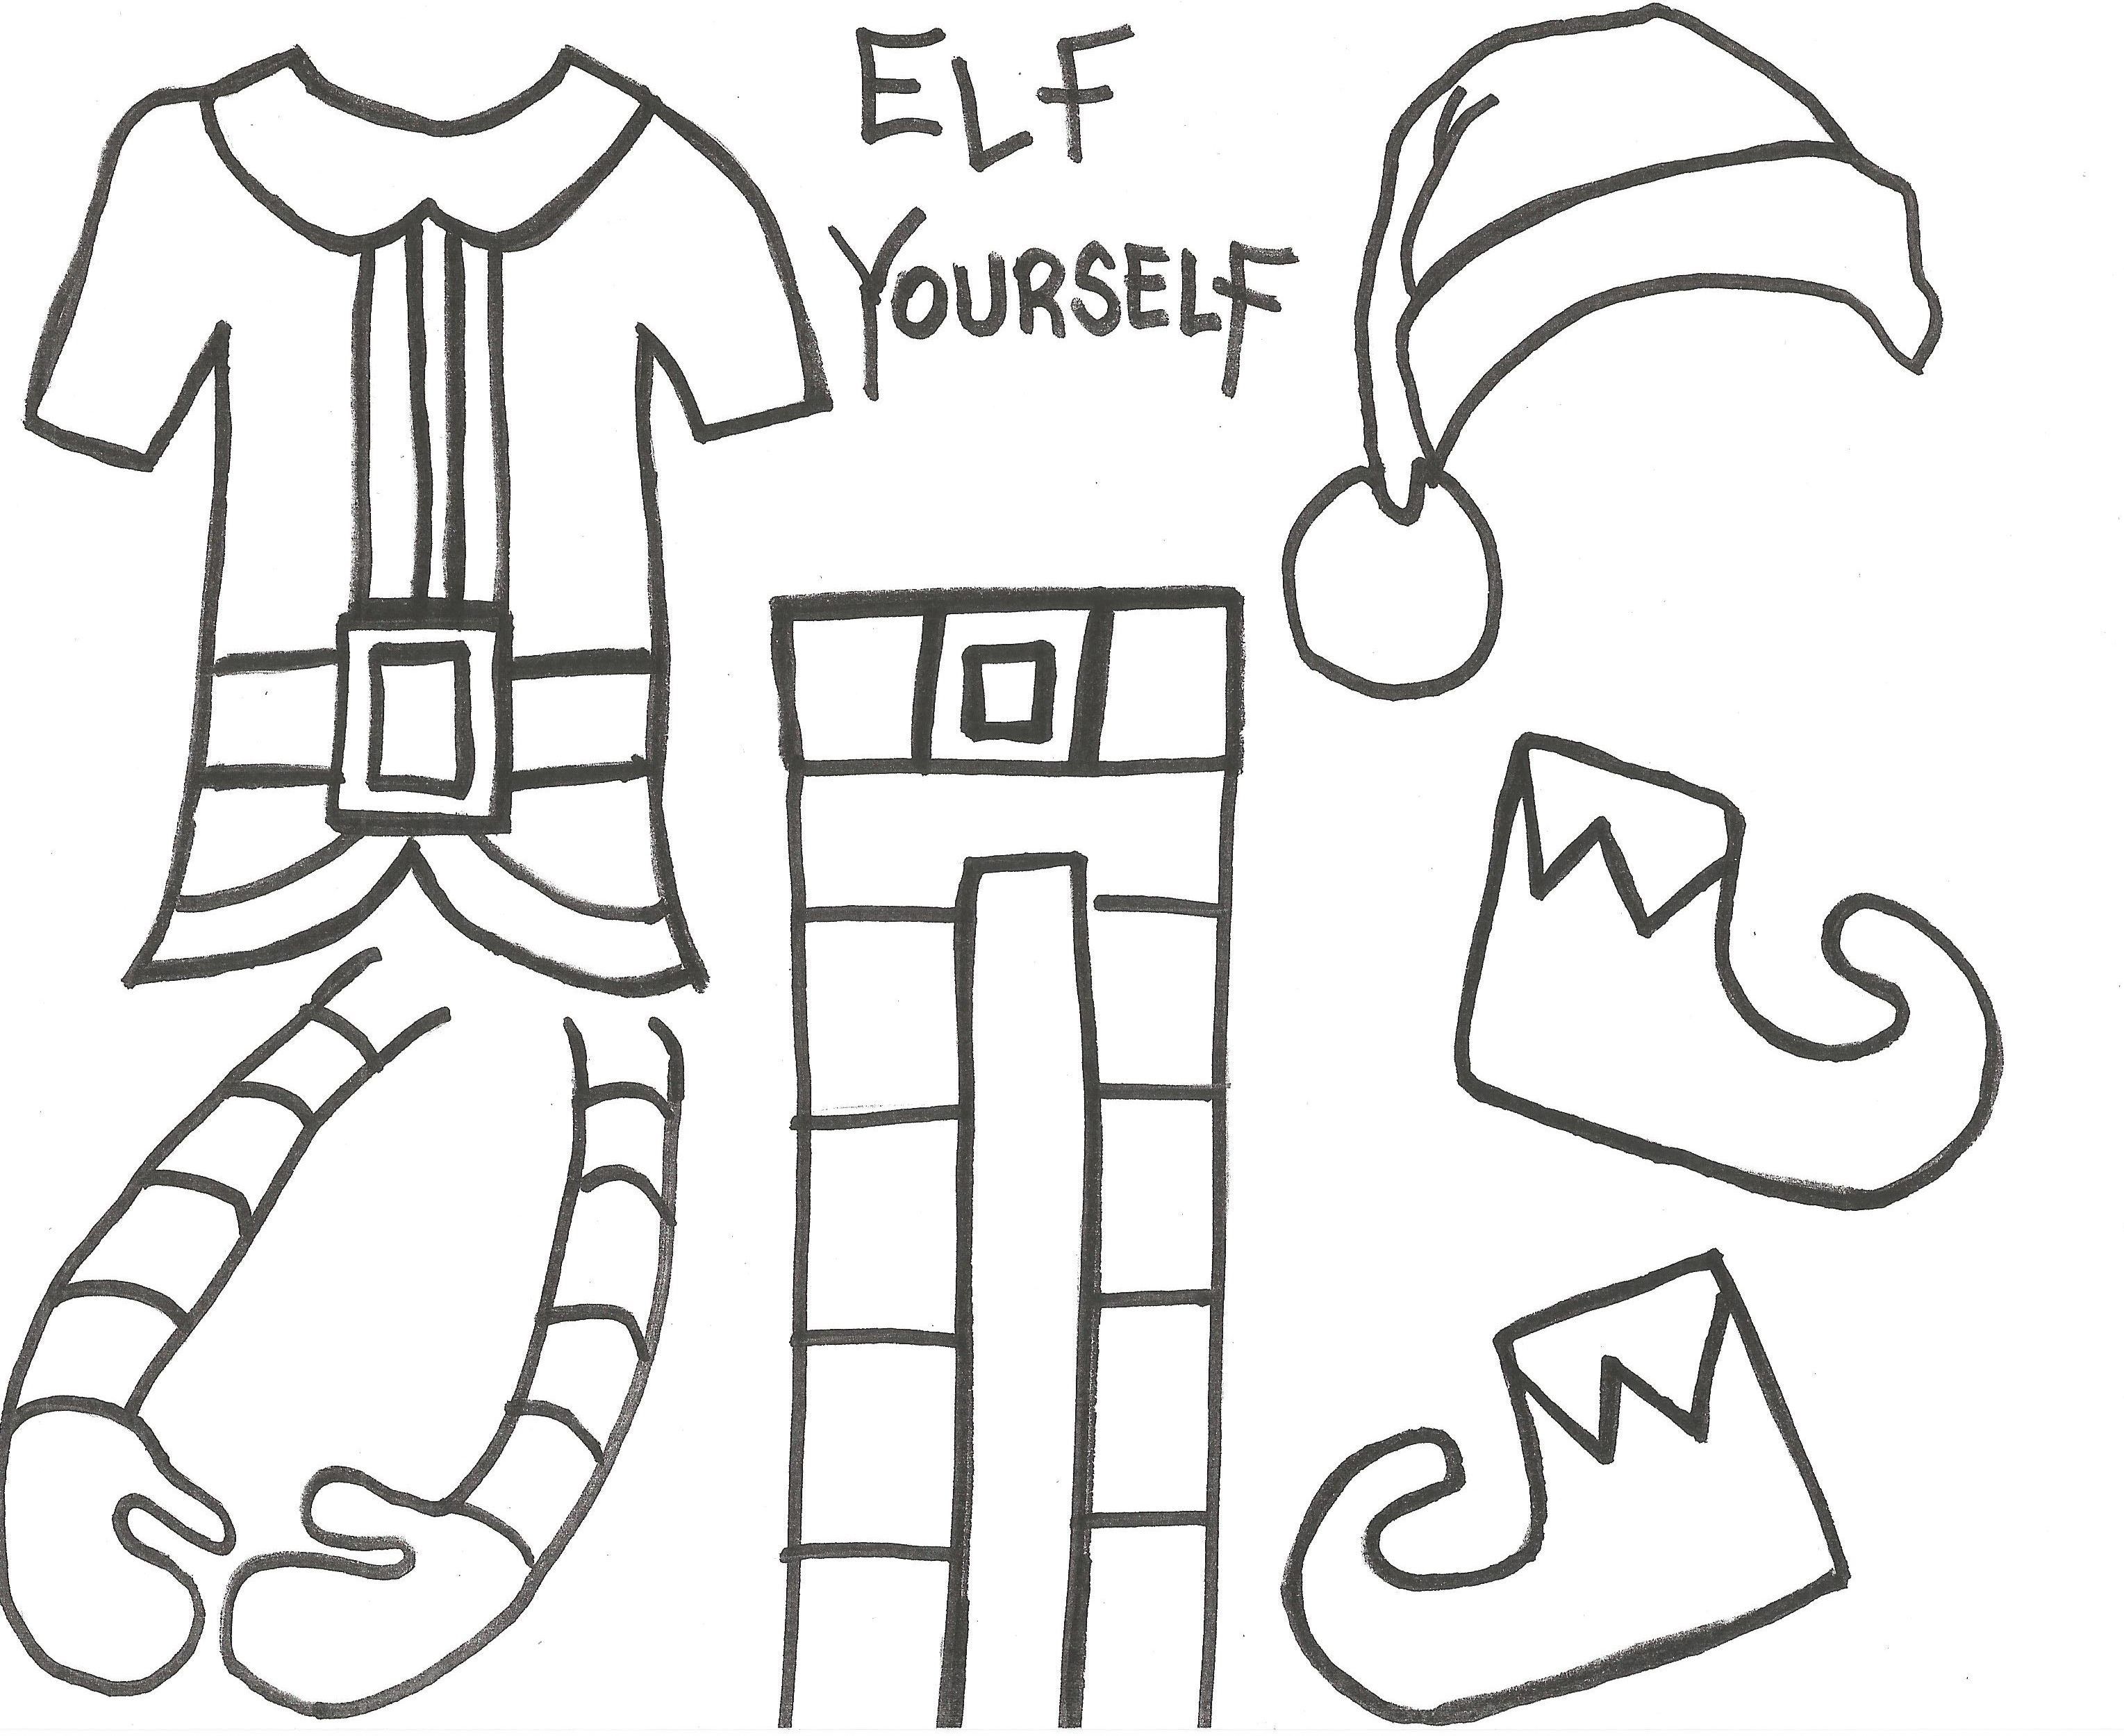 Elf Yourself Take Up Close Photos Of The Students Heads And Cut Them Out To Add To These Clothes